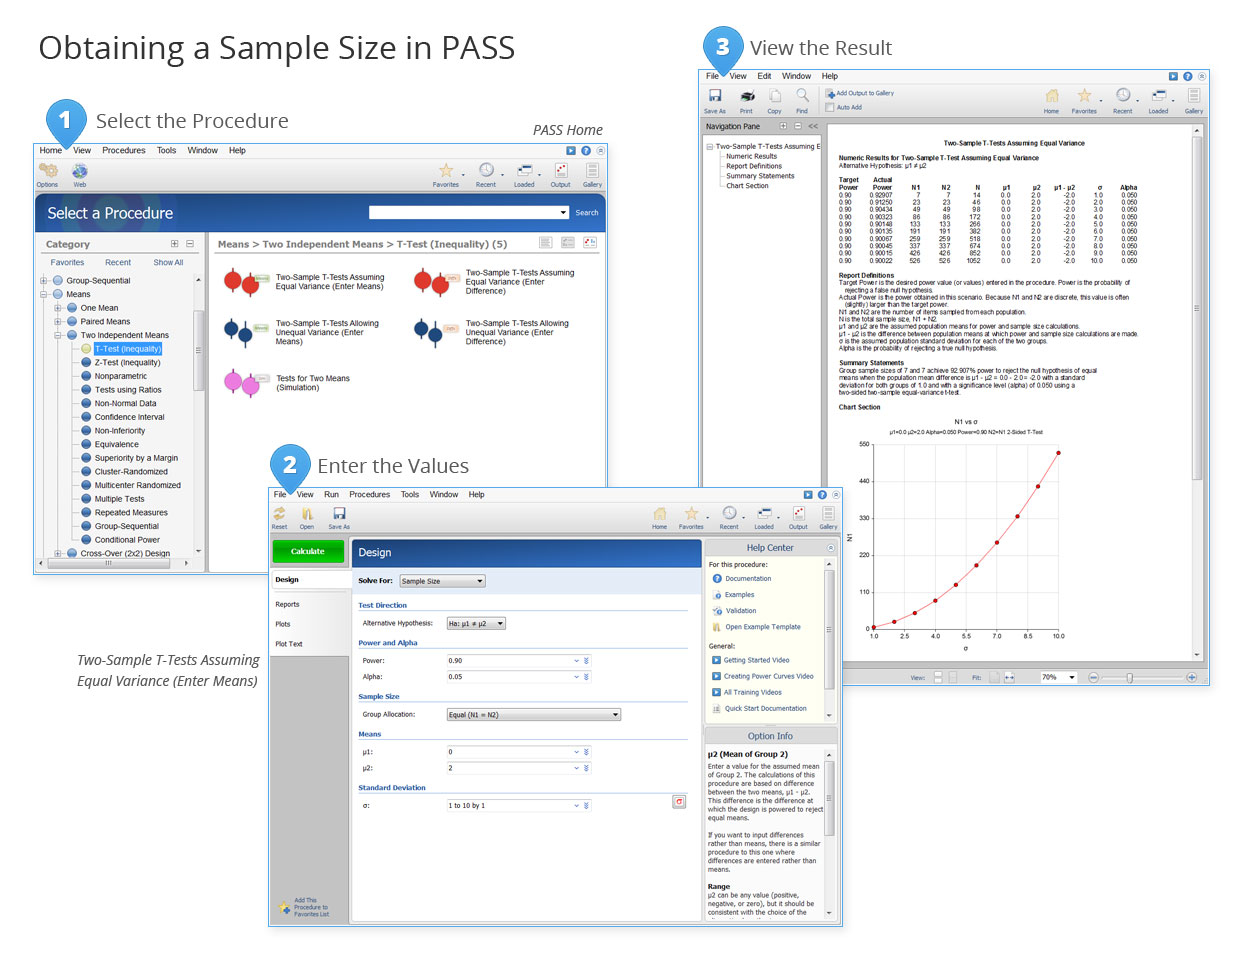 Obtaining a Sample Size in PASS